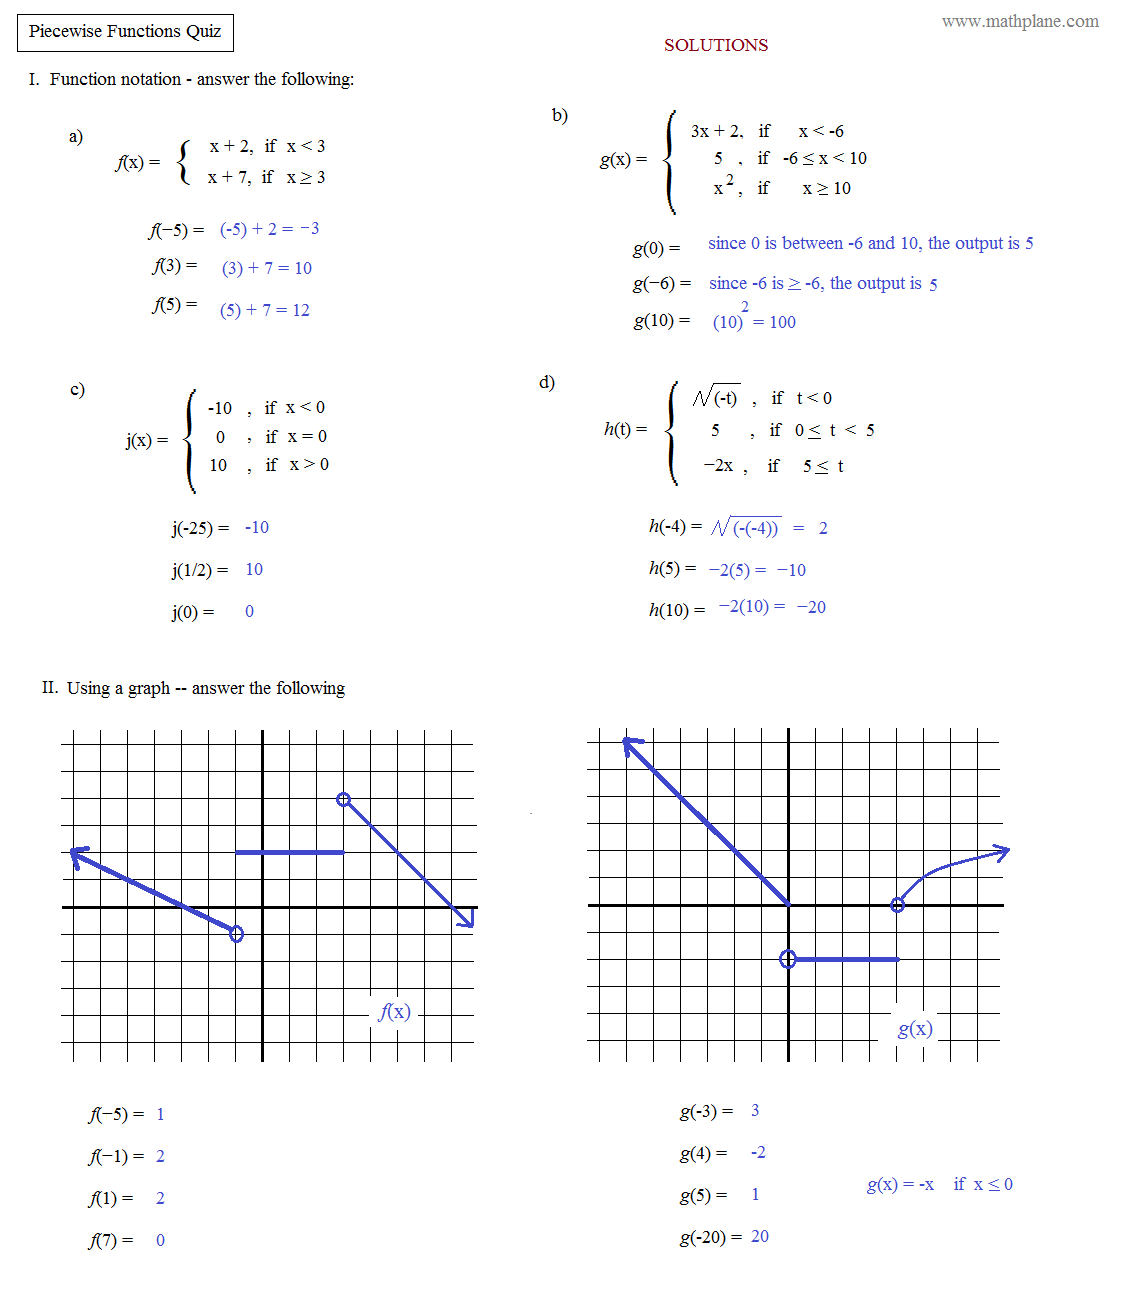 ... Functions Worksheet Math plane - piecewise functions & f(x) notation